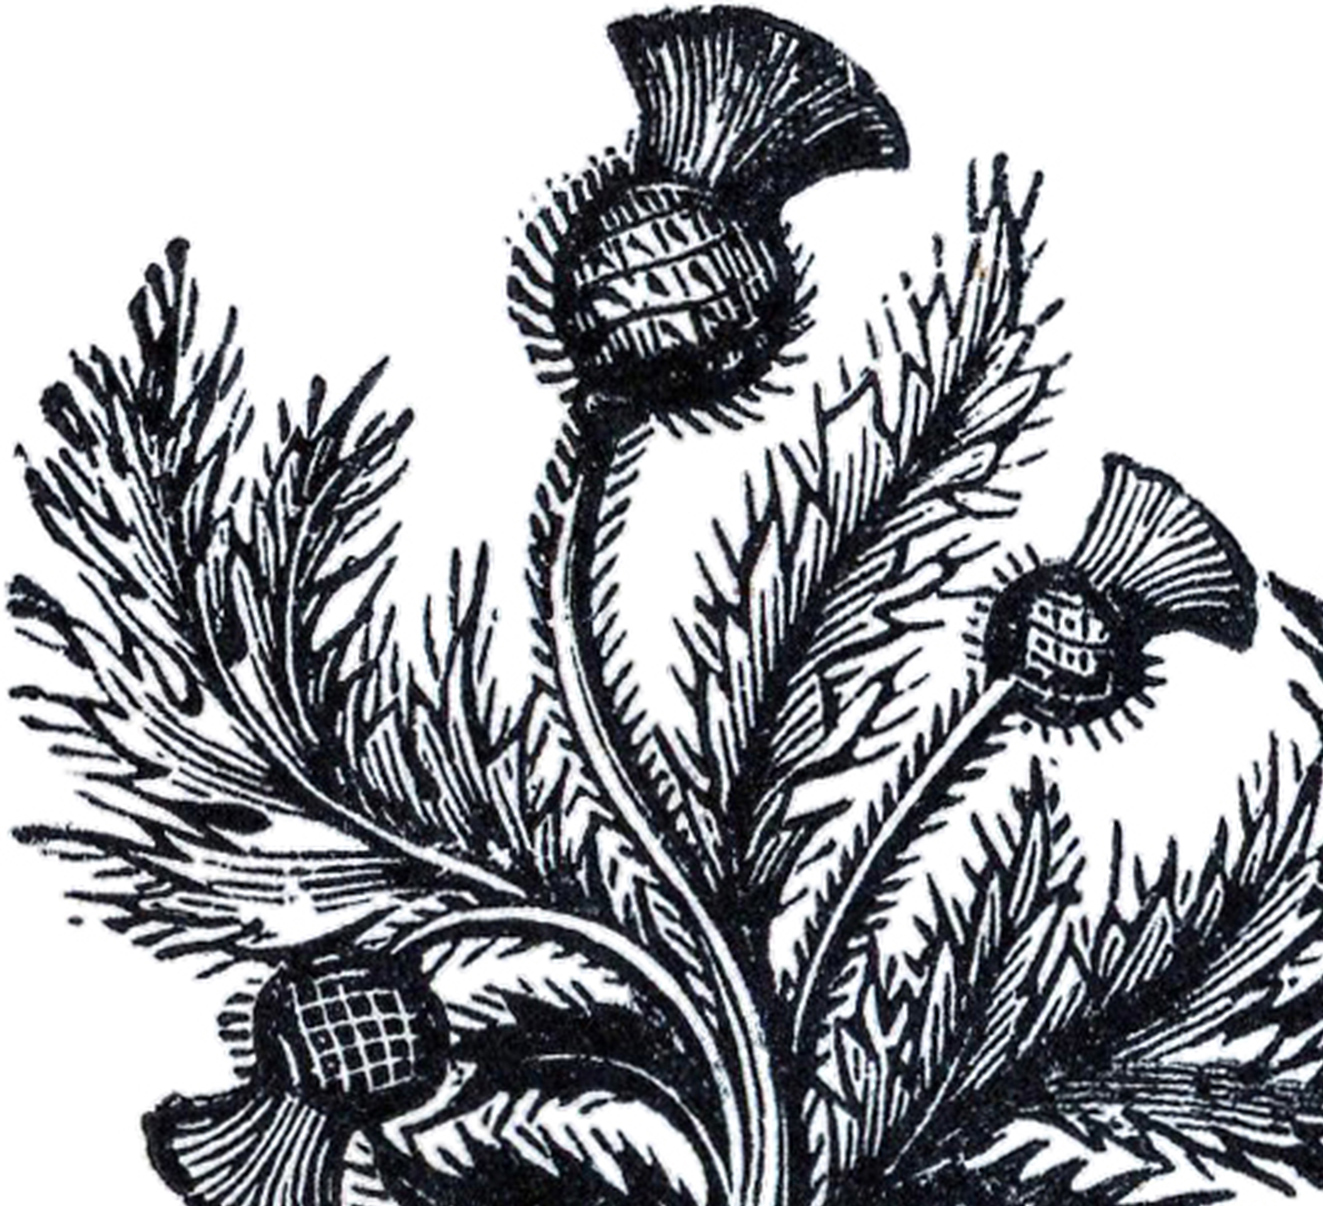 public domain thistle image the graphics fairy